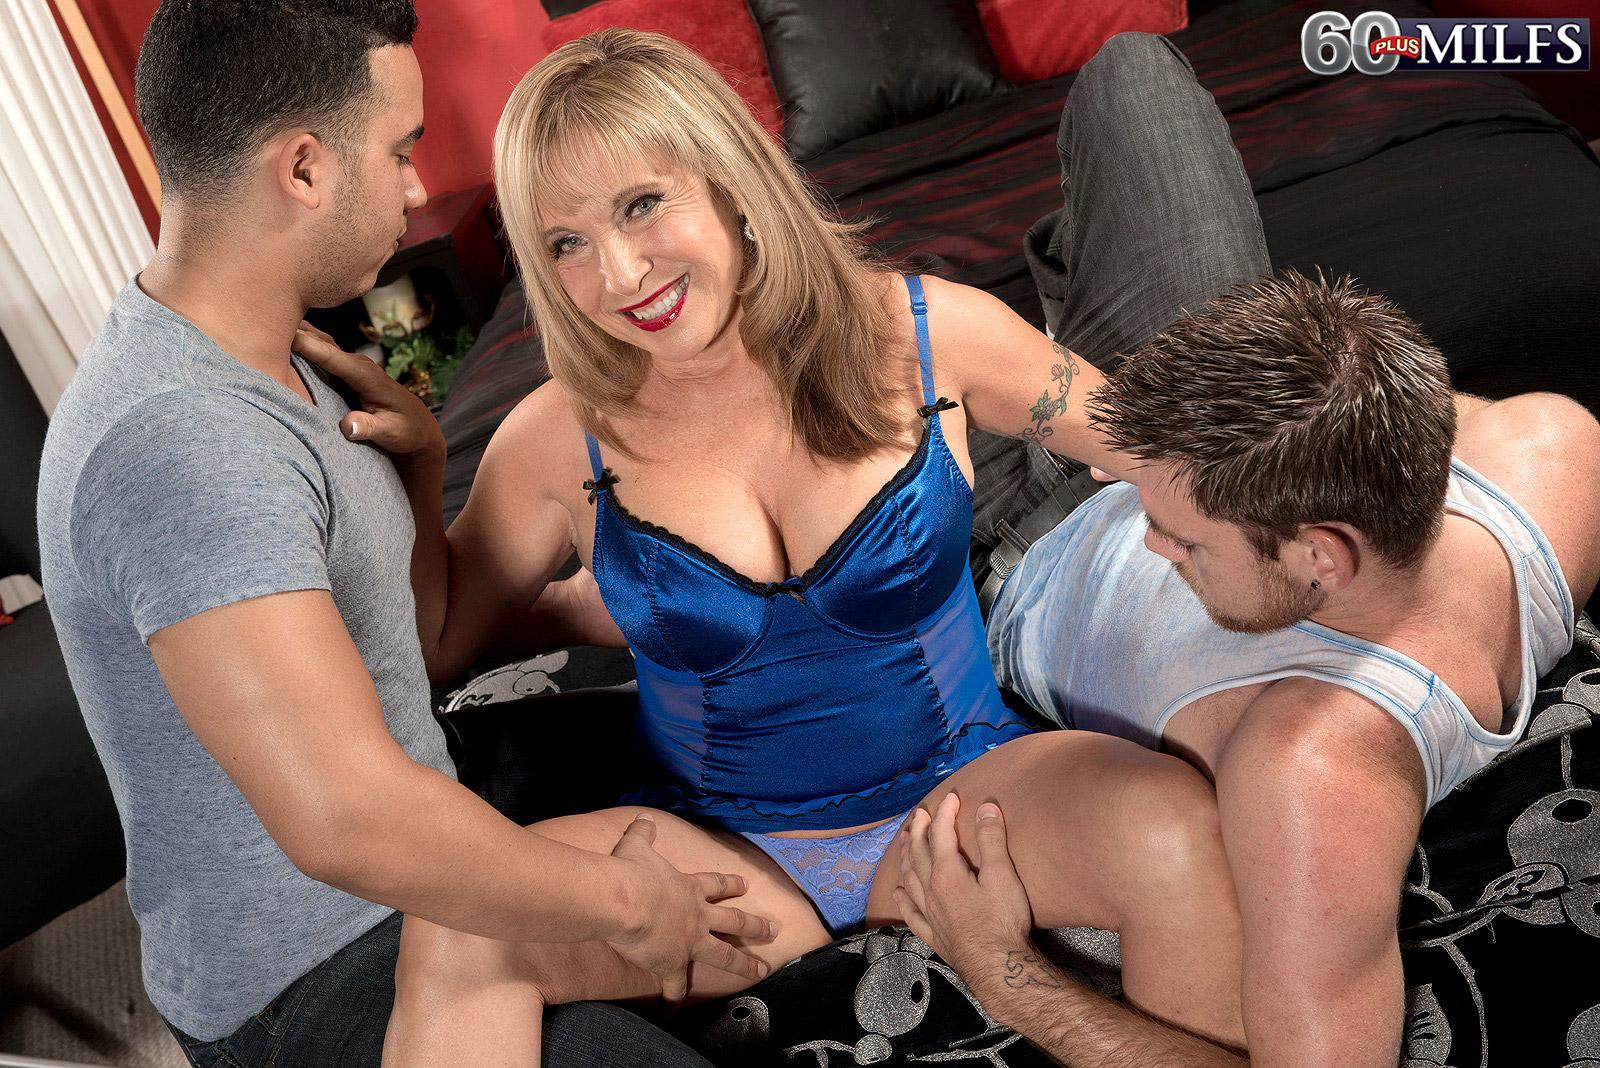 Lingerie garmented light-haired grandmother Luna Azul releasing monster-sized breasts before MMF three-way sex